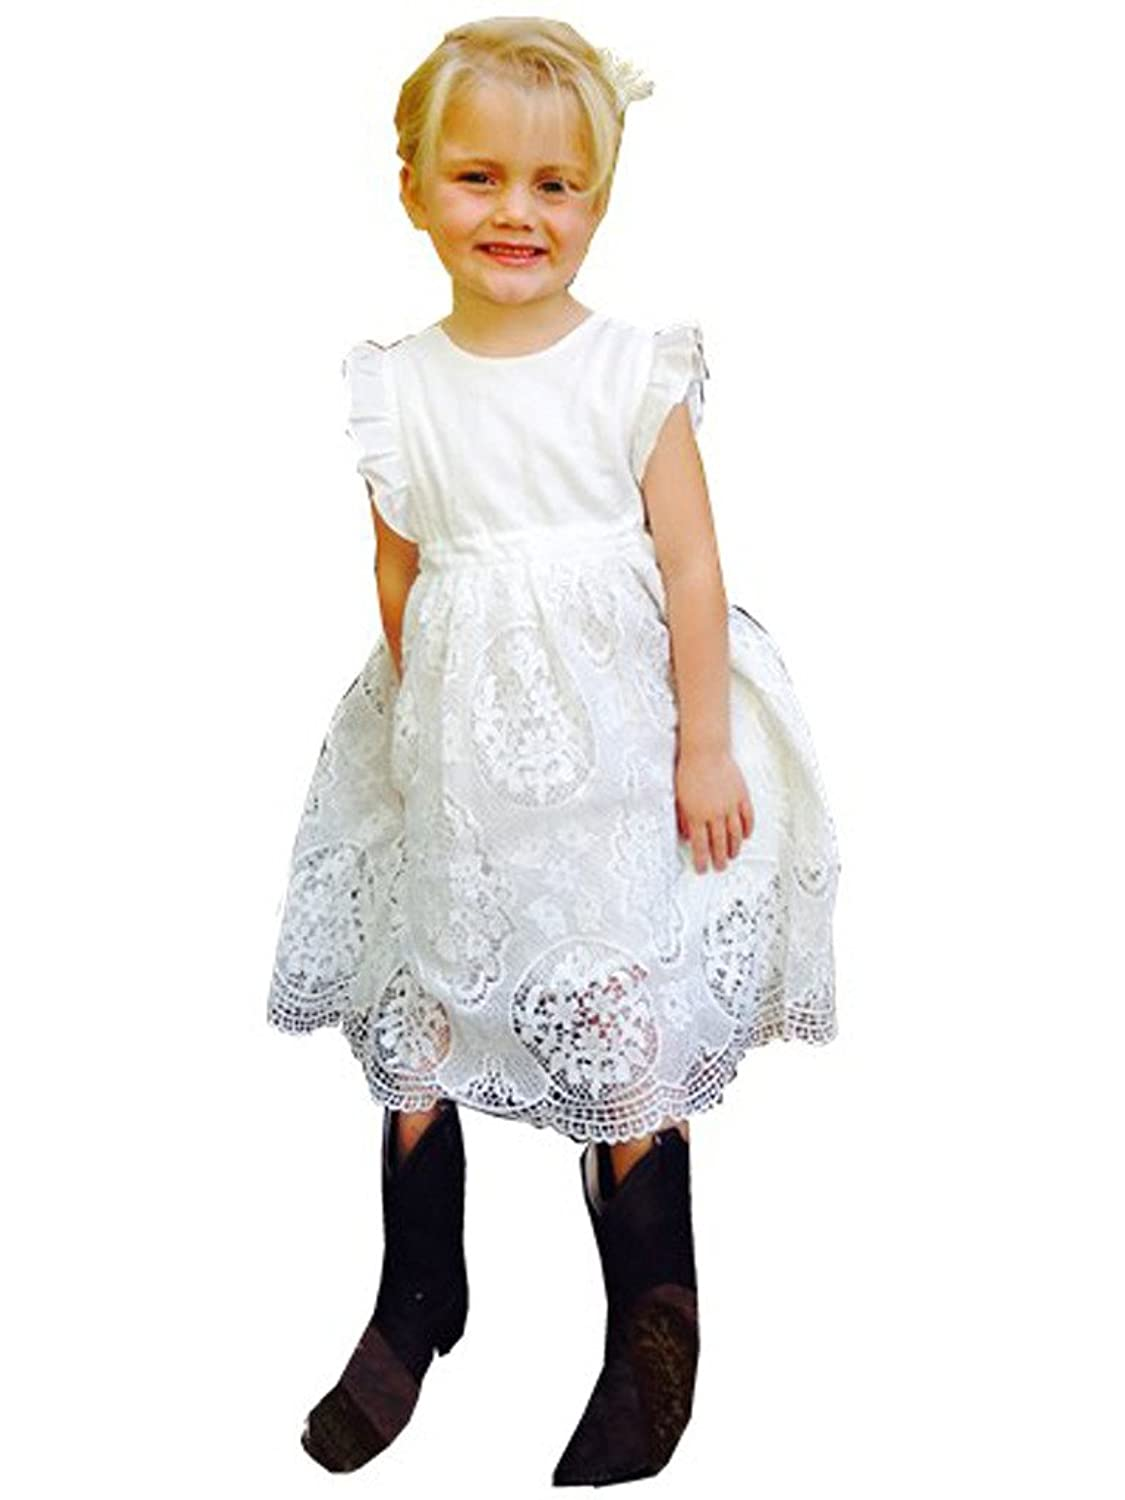 Vintage Style Children's Clothing: Girls, Boys, Baby, Toddler Bow Dream Flower Girls Dress Vintage Lace $25.99 AT vintagedancer.com